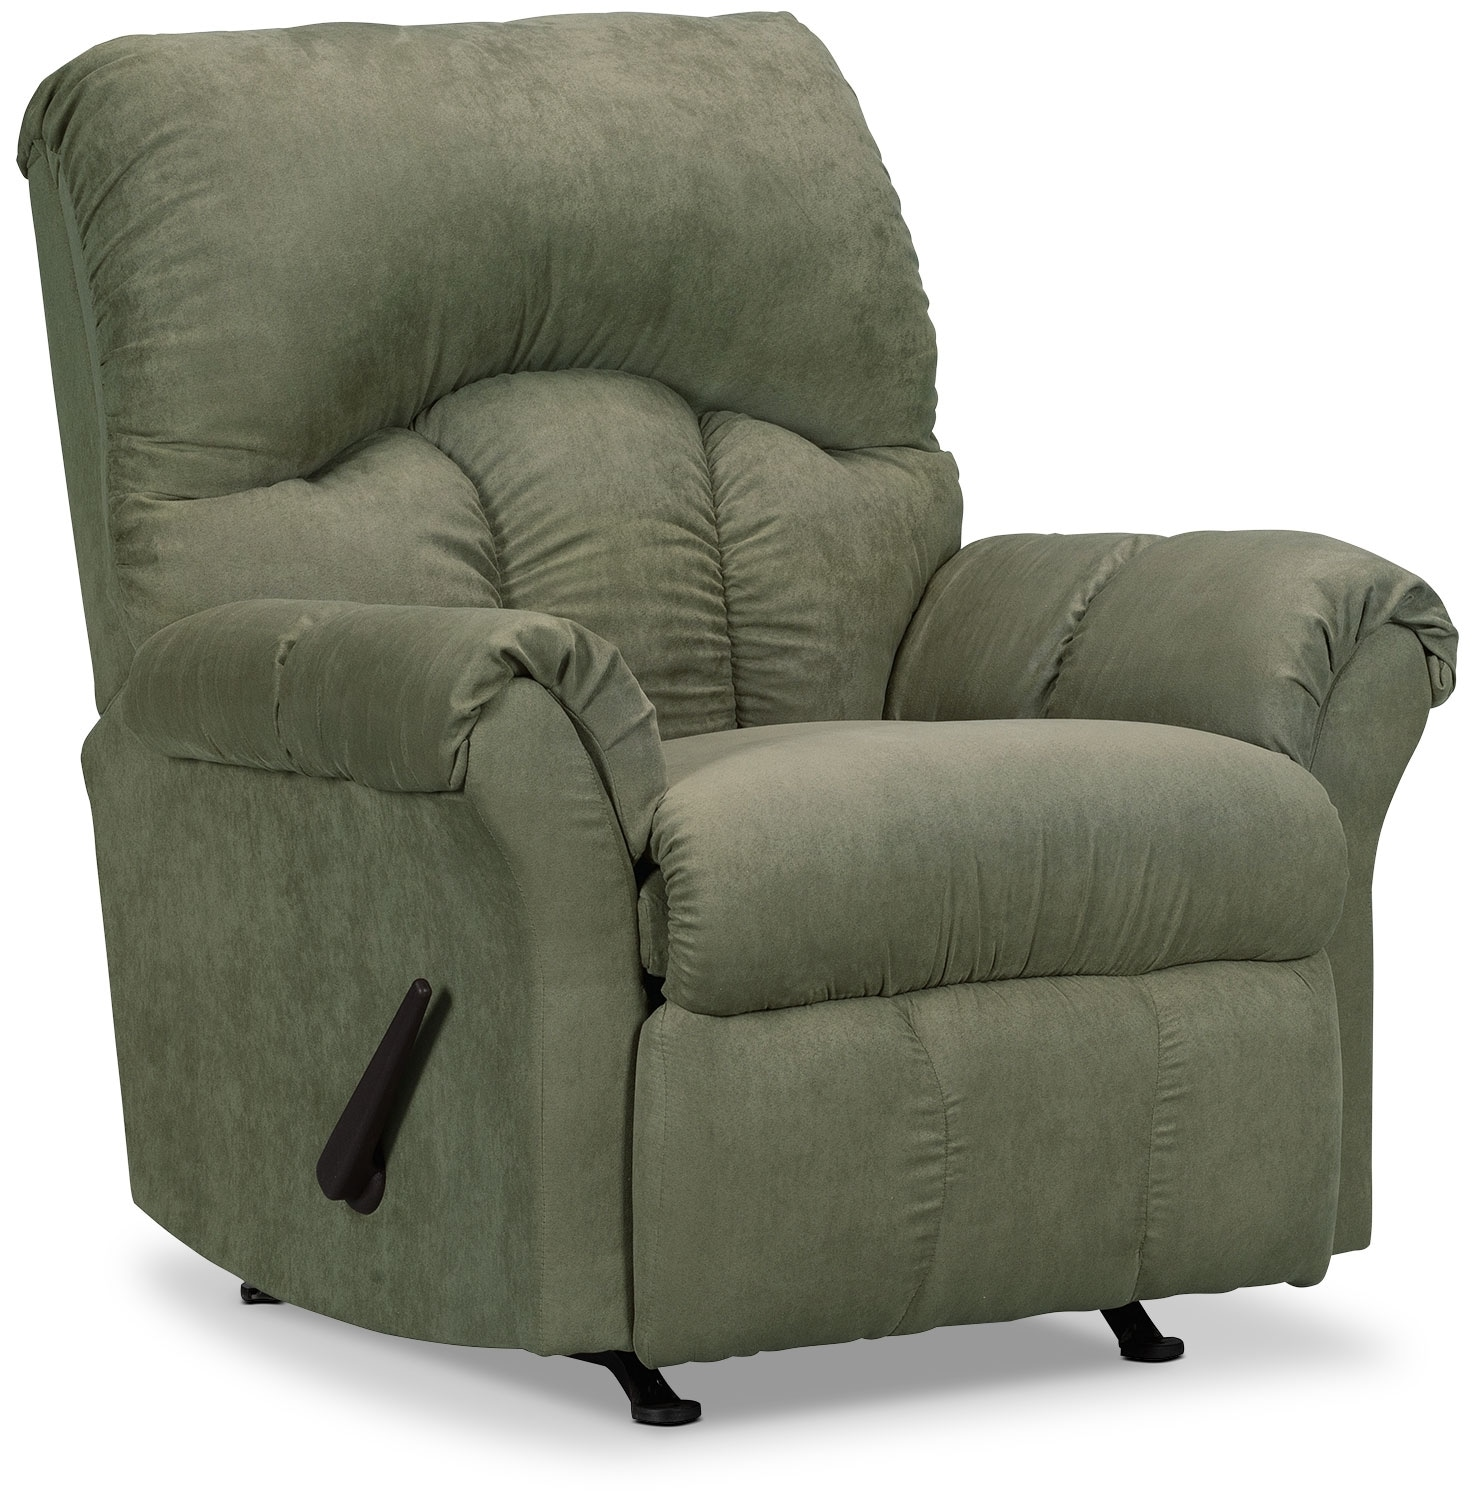 Designed2b recliner 6734 microsuede rocking chair fern the brick swivel rocking chairs for living room